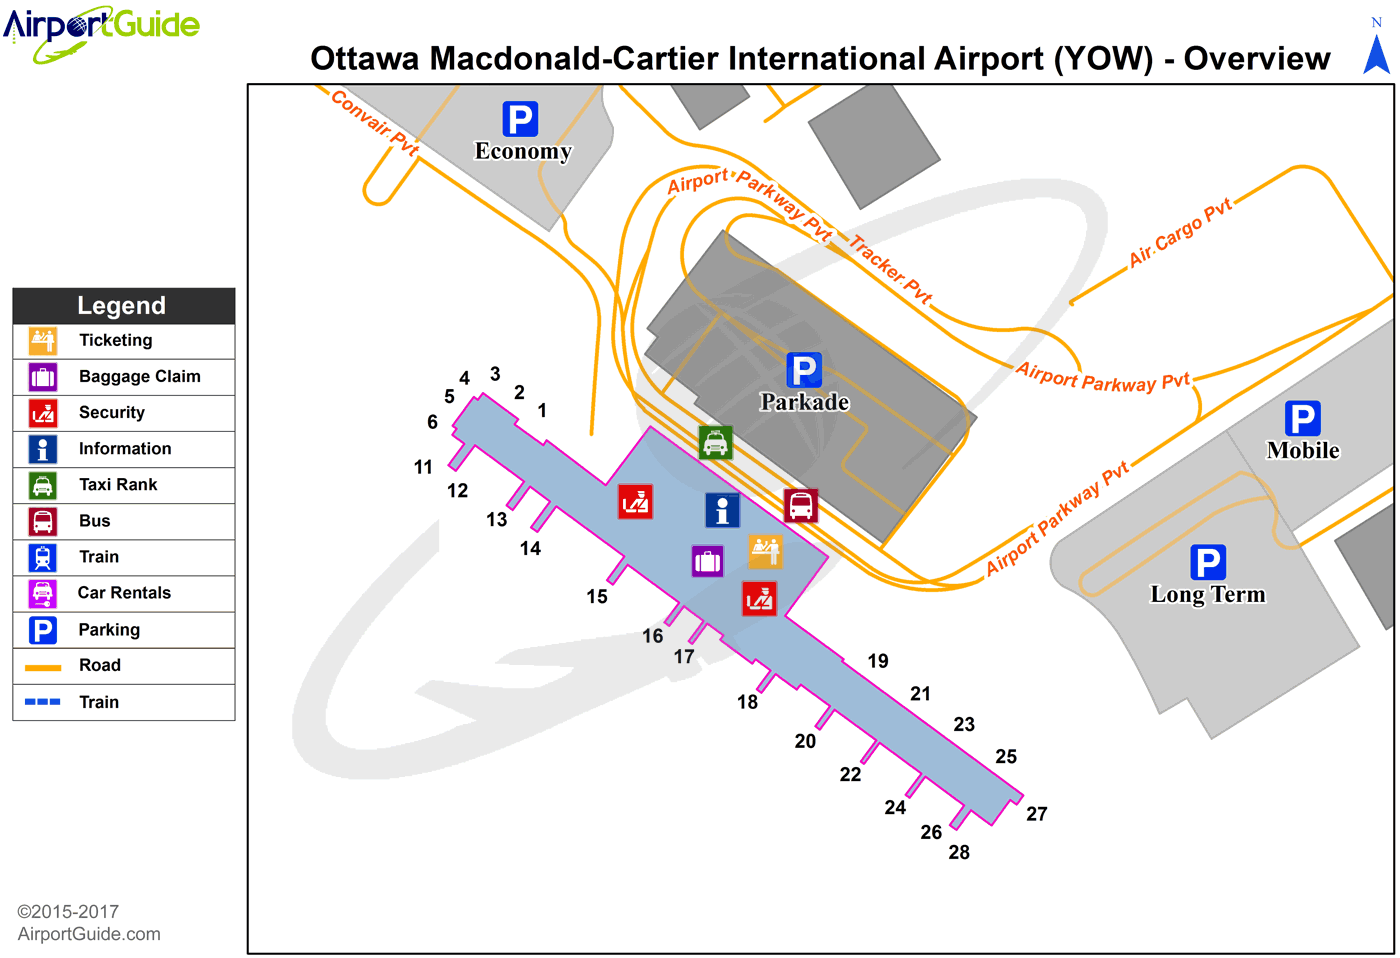 Ottawa - Ottawa/Macdonald-Cartier International (YOW) Airport Terminal Map - Overview